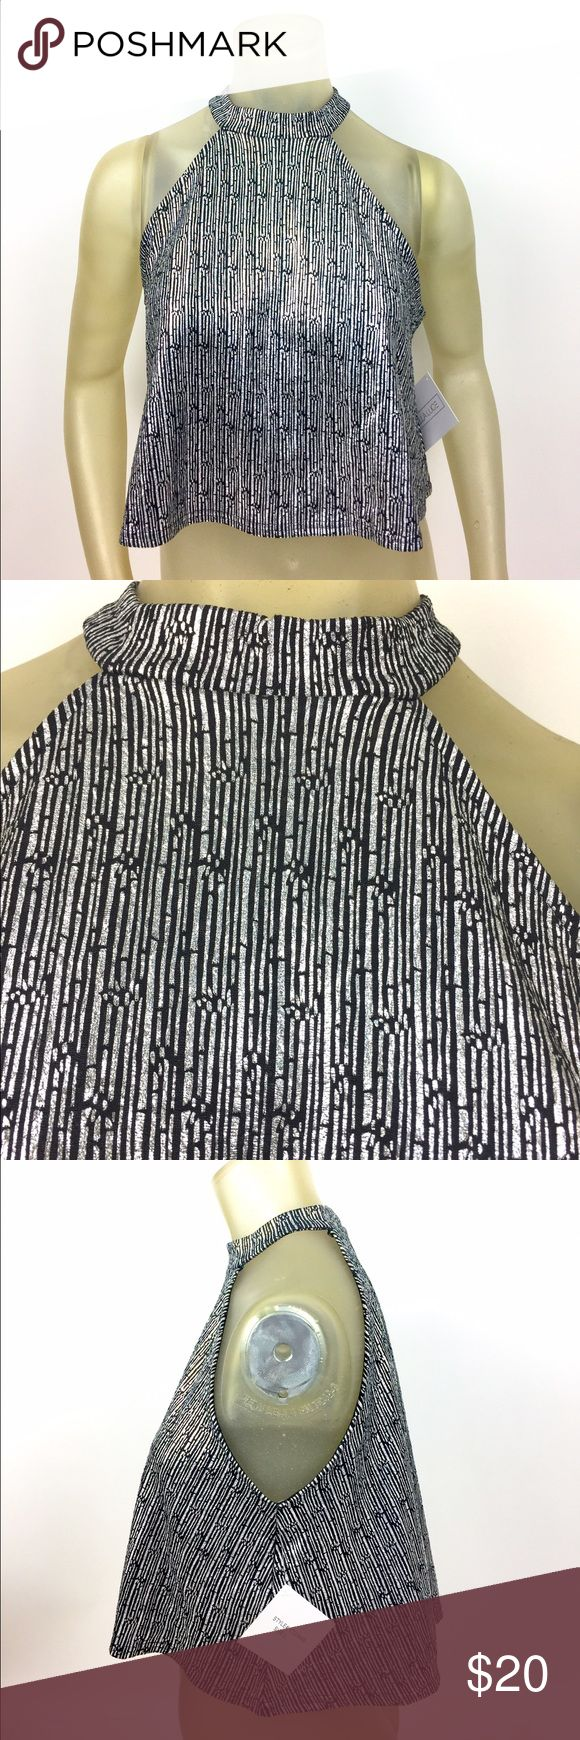 """Stella Luce Metallic Crop Top L Black and silver metallic crop top by Stella Luce. Flattering neck line. 95% polyester, 5% spandex; hand wash. Sz L measures 20"""" long and 19"""" armpit to armpit. New with tags. A01010 Stella Luce Tops Crop Tops"""